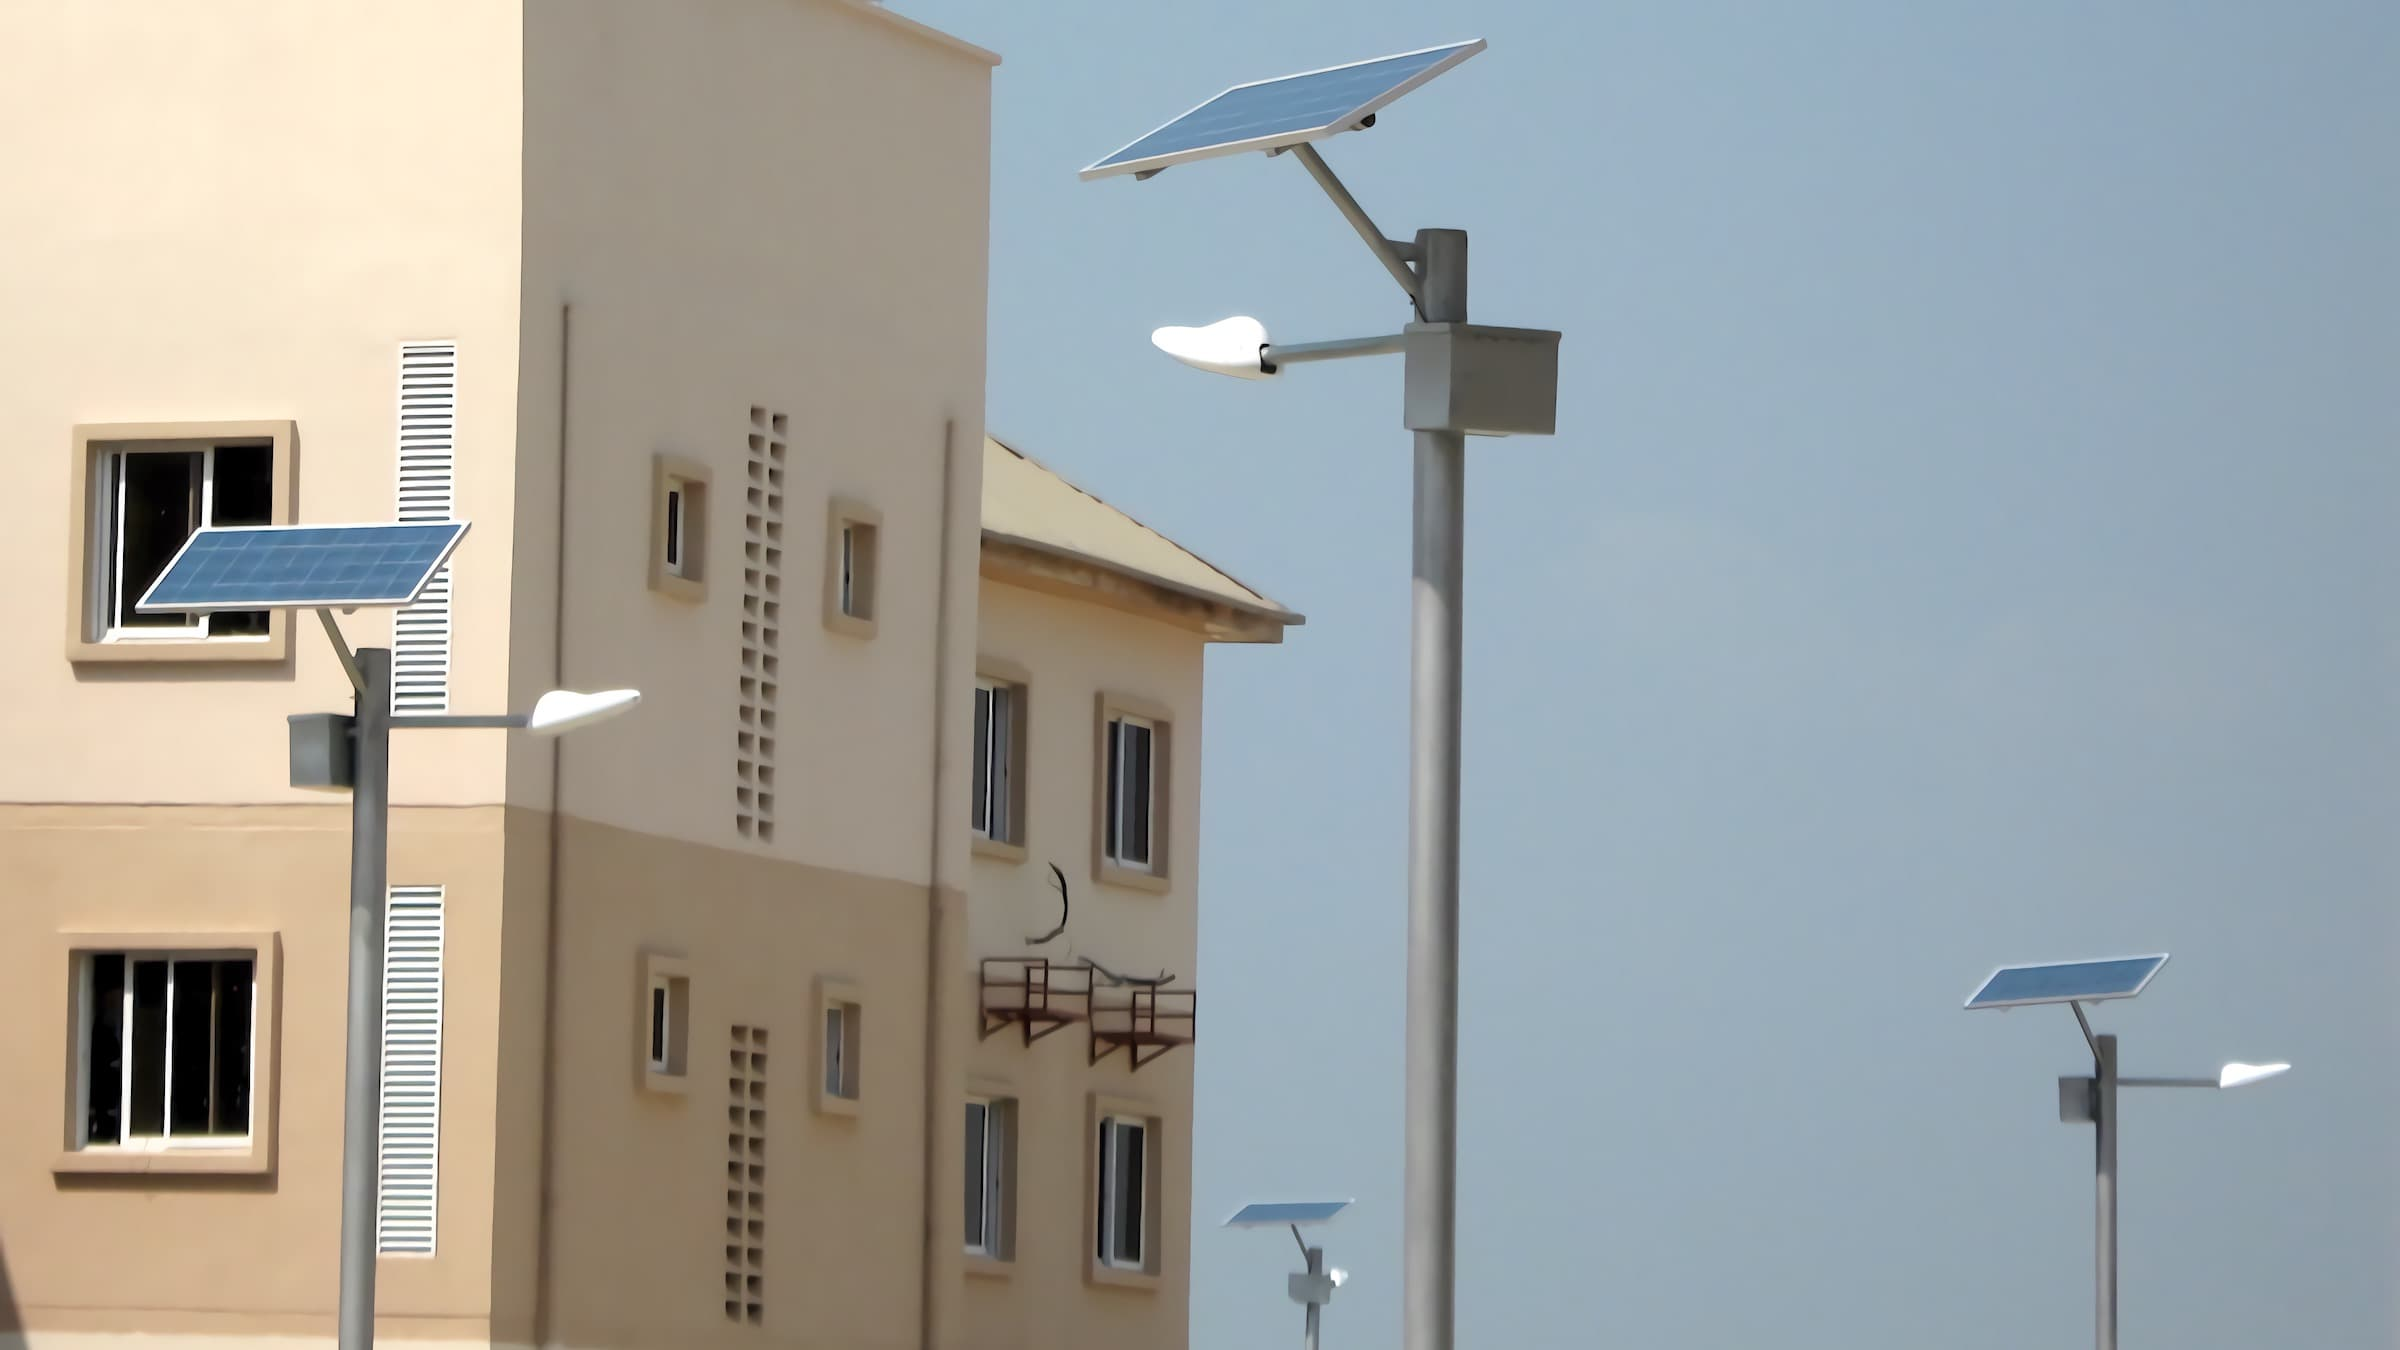 Hundreds of 35 W Solar LED Street Lights are now sparkling on the streets of Lagos, this project has greatly reduced the local power consumption